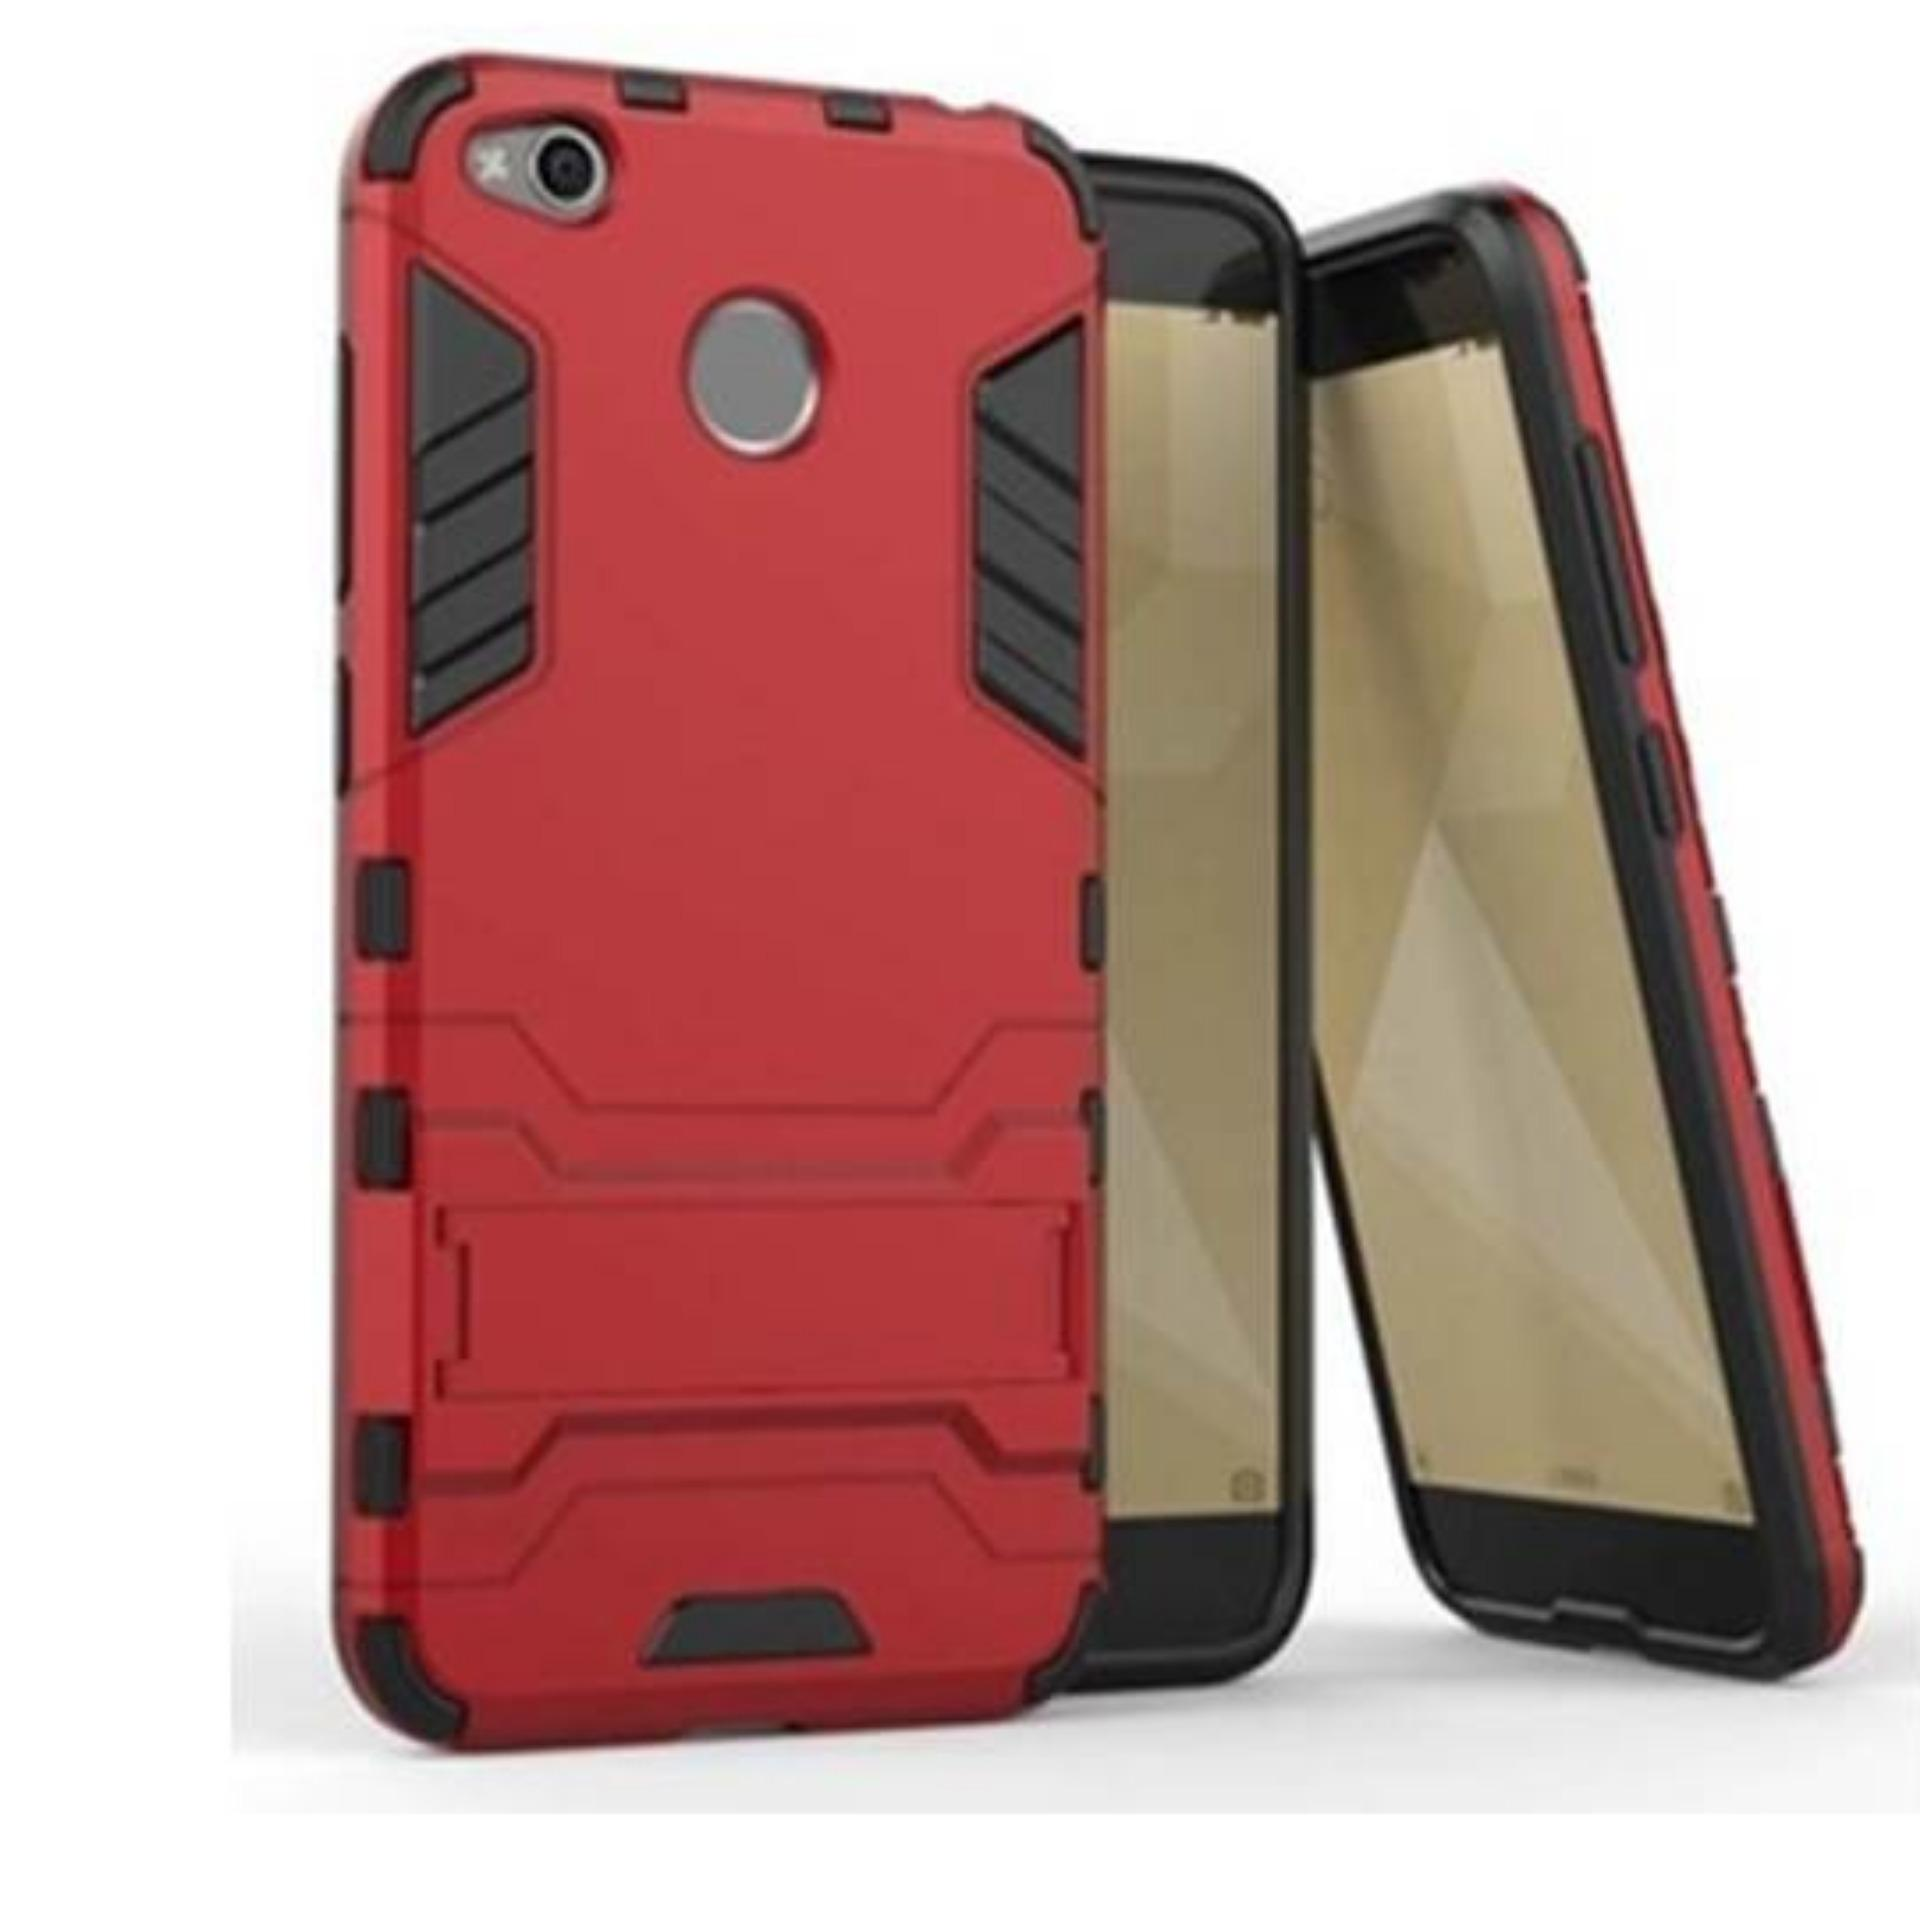 CASE ROBOT TRANSFORMER HARDCASE IRON MAN WITH STANDING FOR XIAOMI REDMI 4X LIMITED .